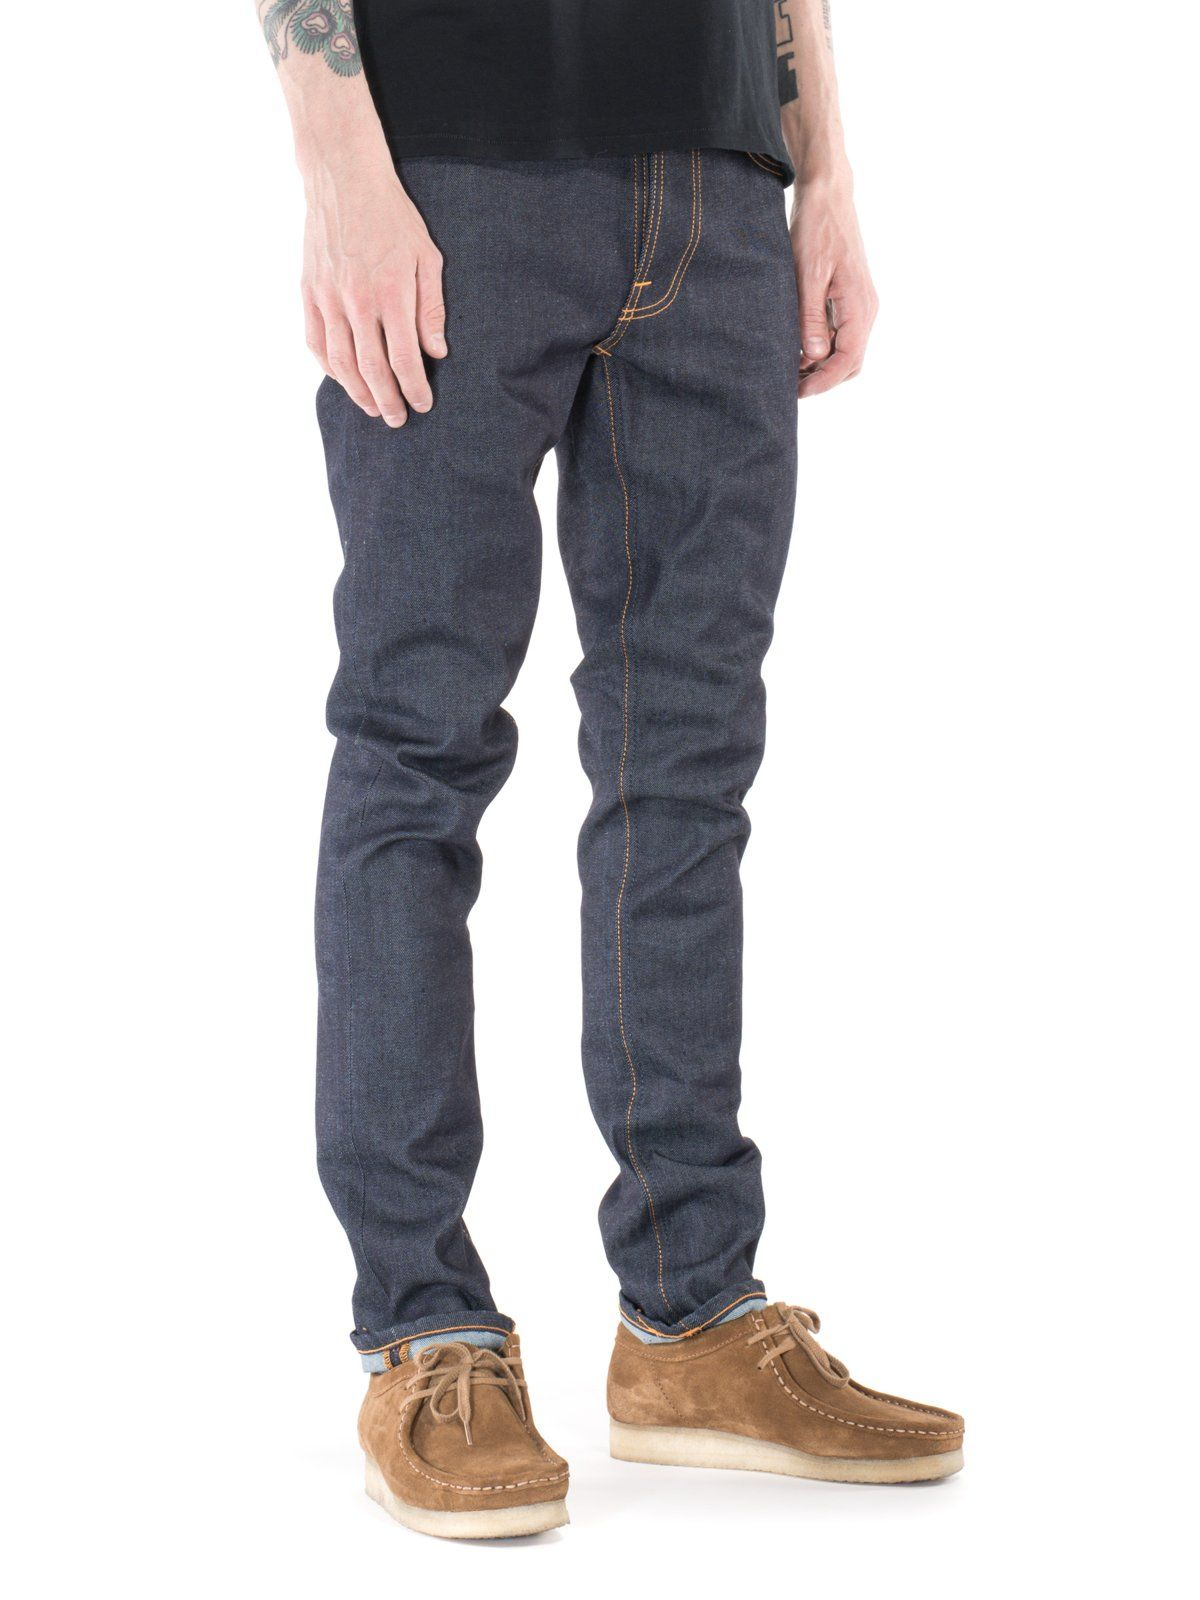 d102c2ba72d4df Wide range of jeans in dry, black and prewashed, rigid, selvage and stretch  denim. Buy denim jeans at the Nudie Jeans Online Shop.